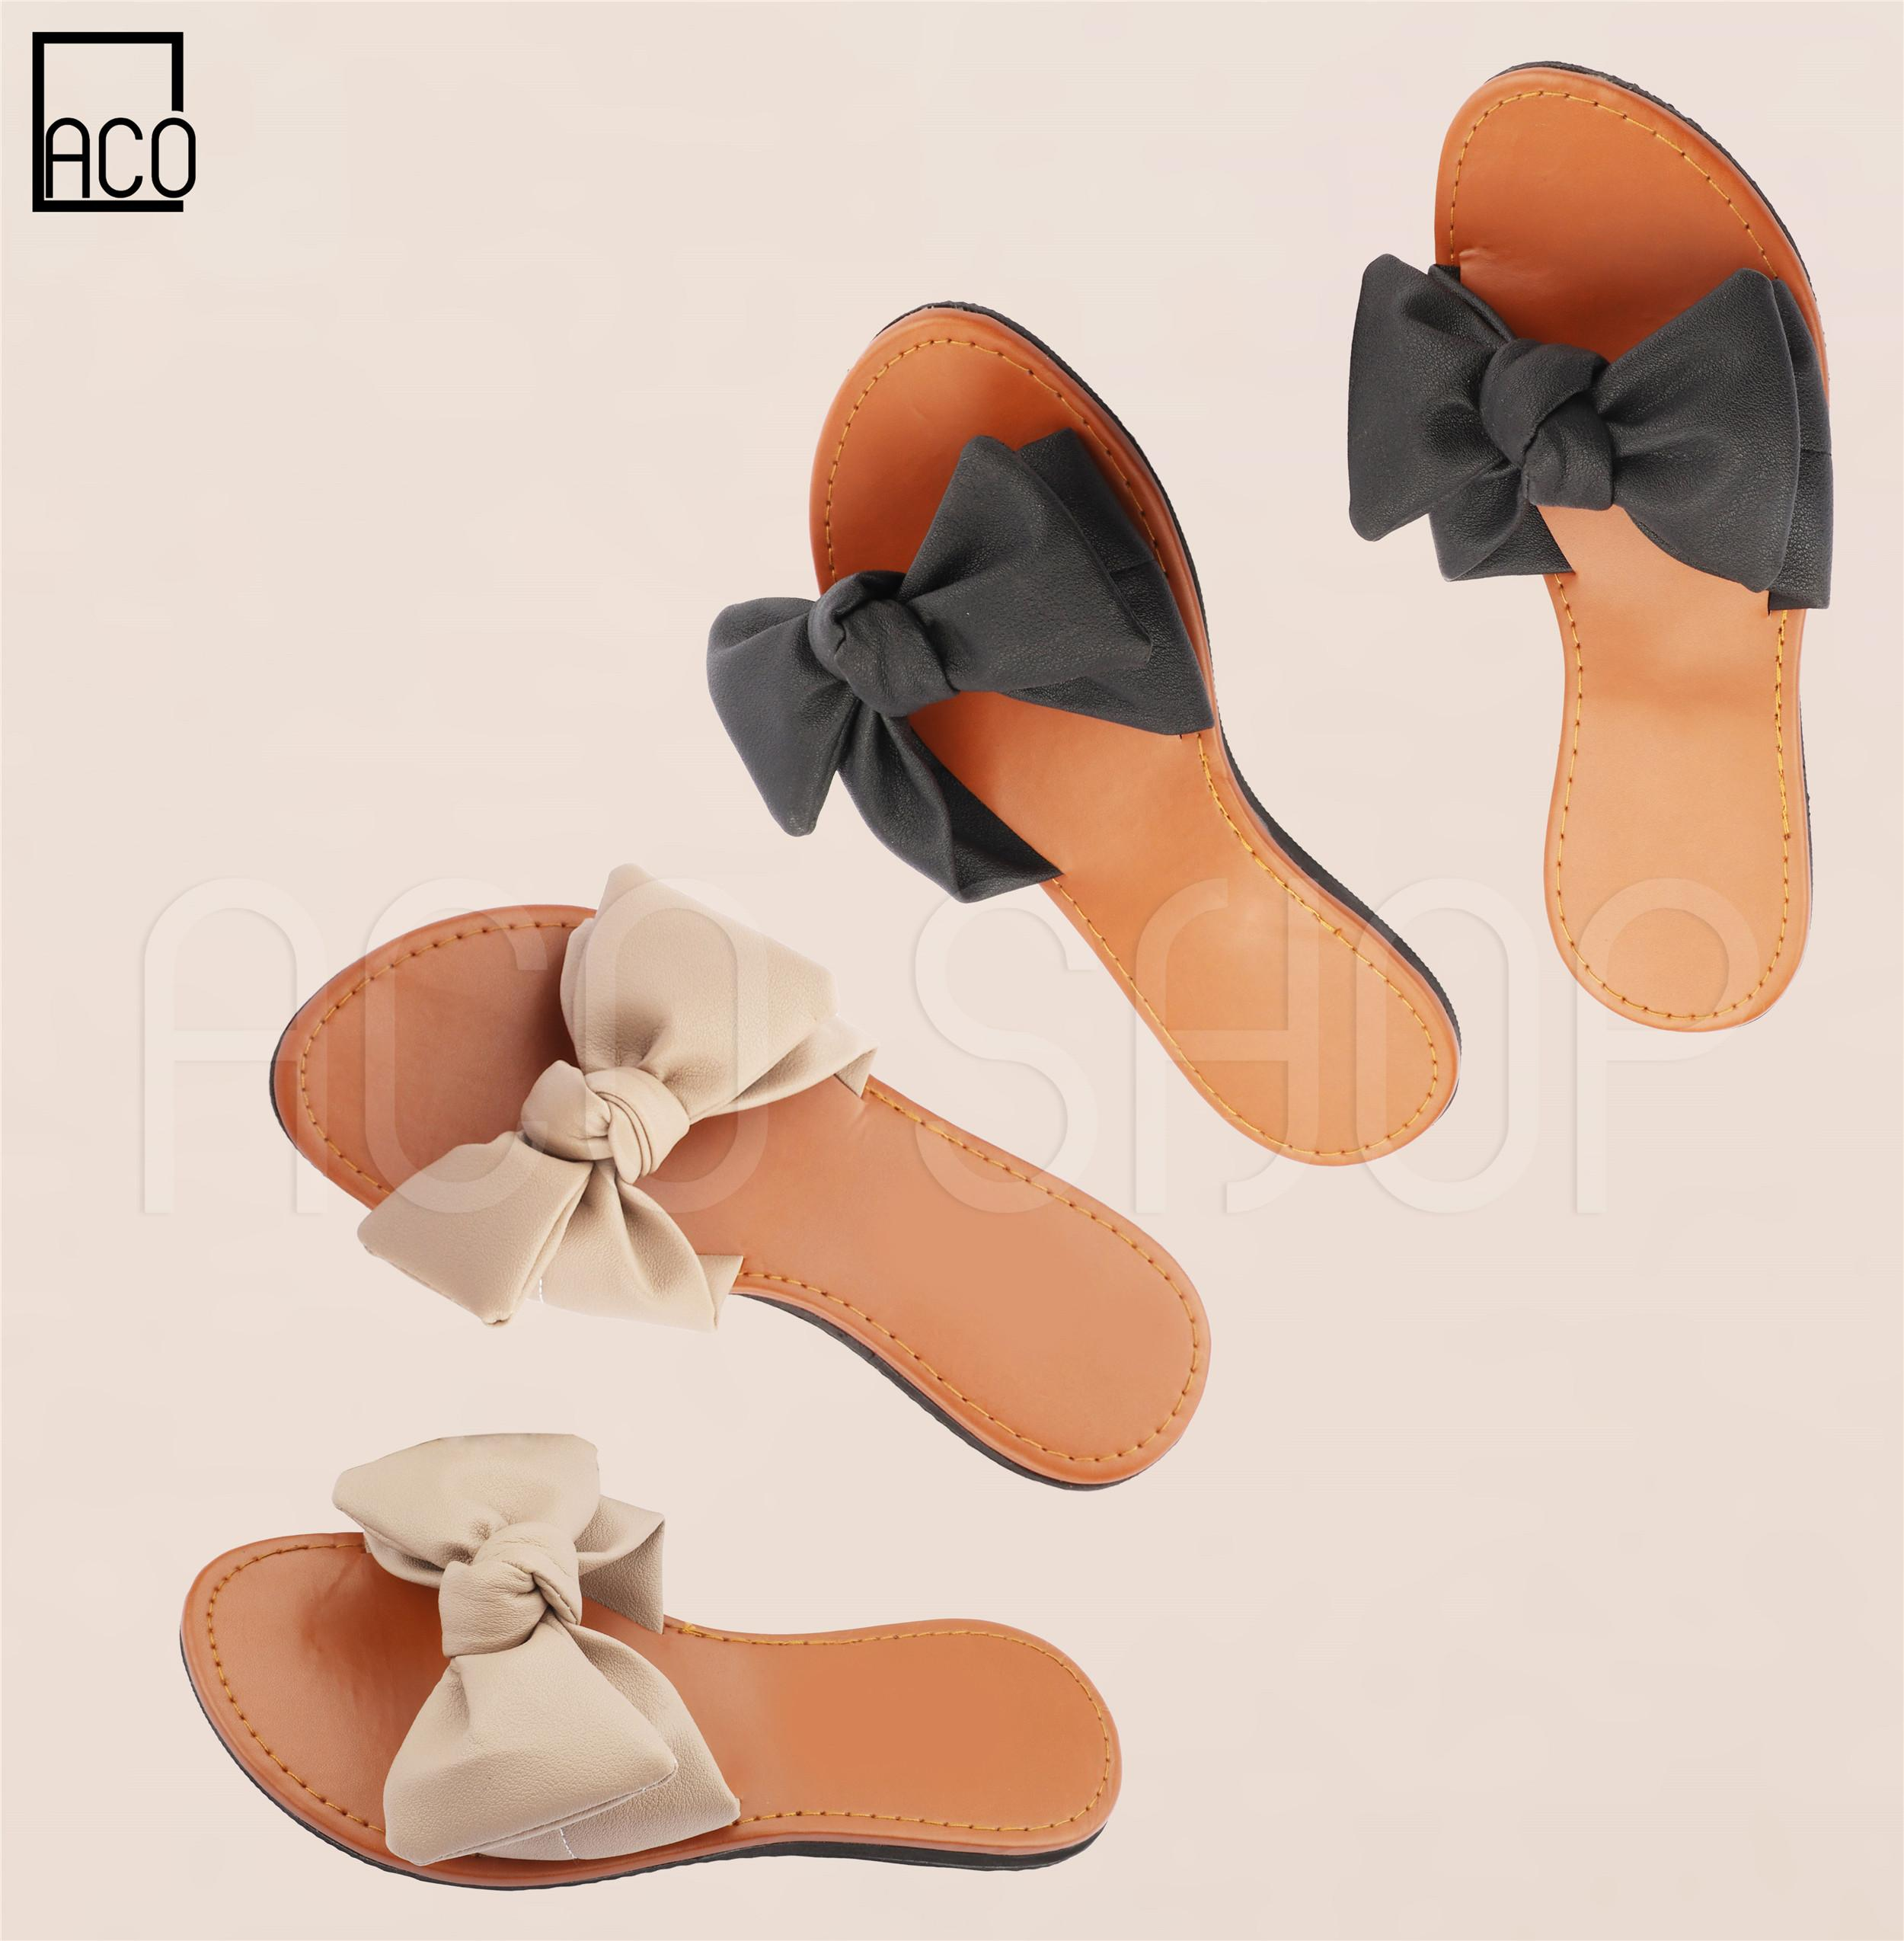 61f294d69 ACO Sandals Korean Trend Leather Ribbon Flat Sandal S101